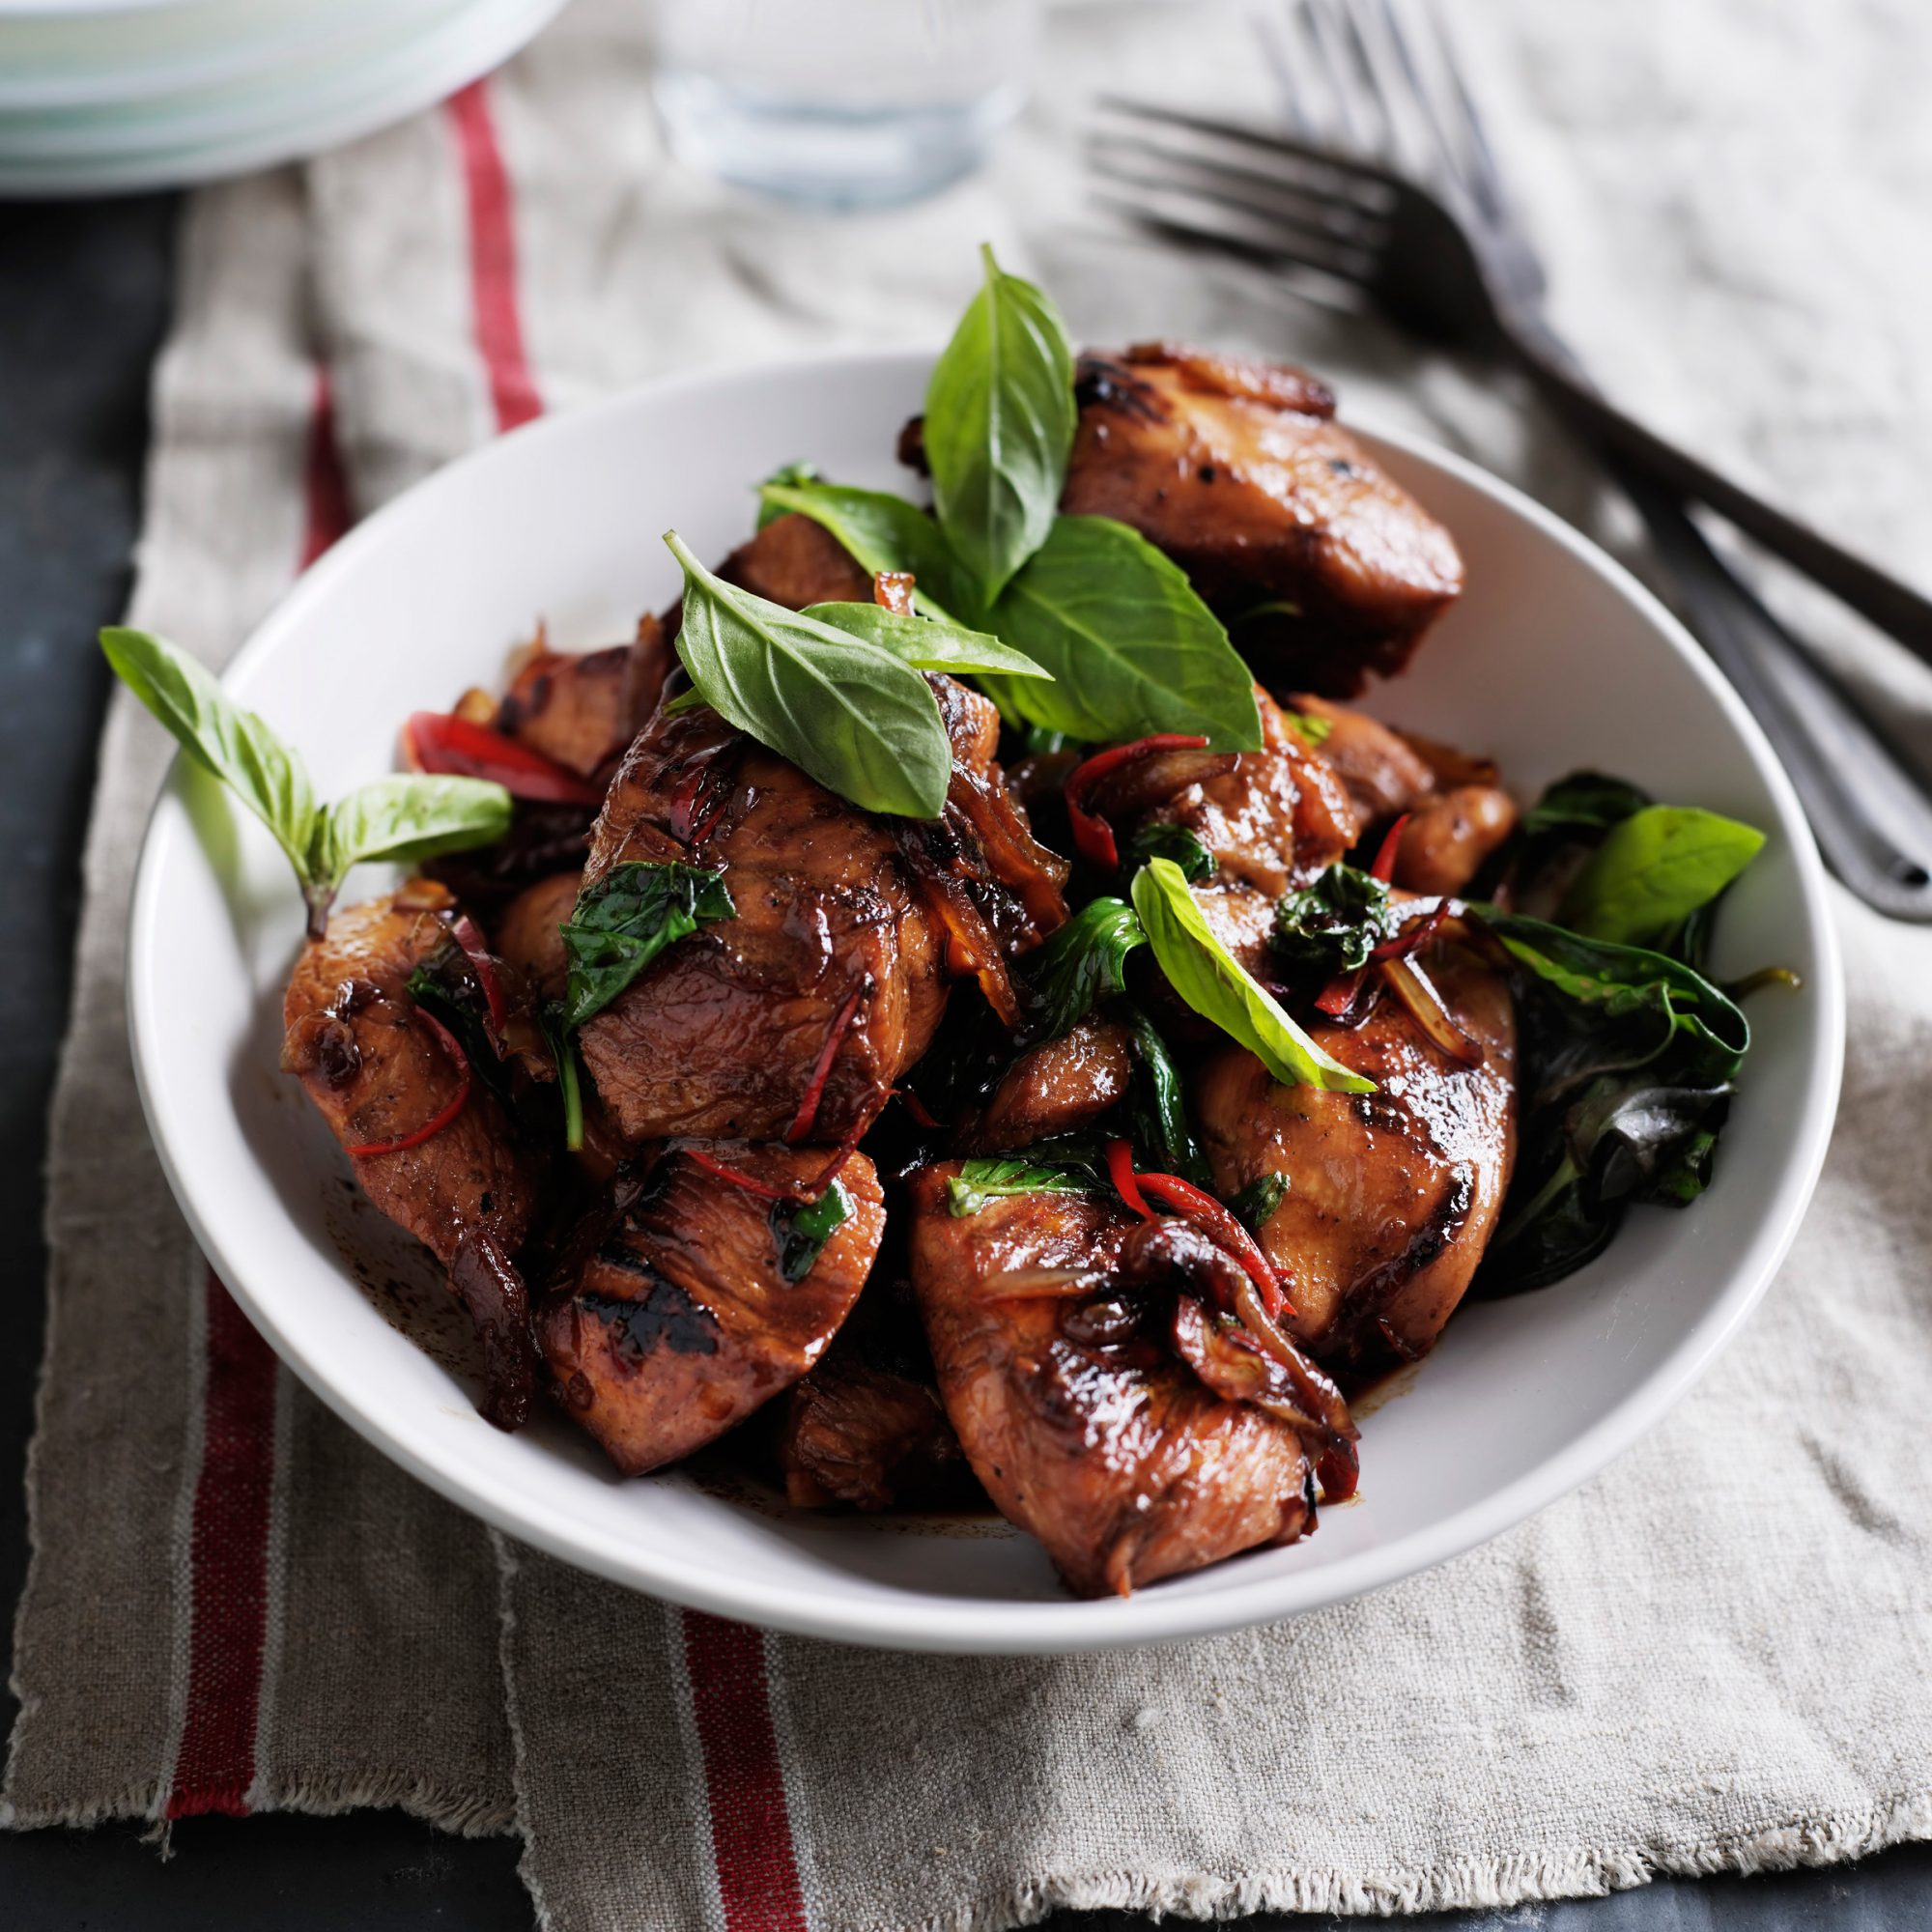 Thai Chicken With Basil Recipe Quick From Scratch Herbs Spices Food Wine